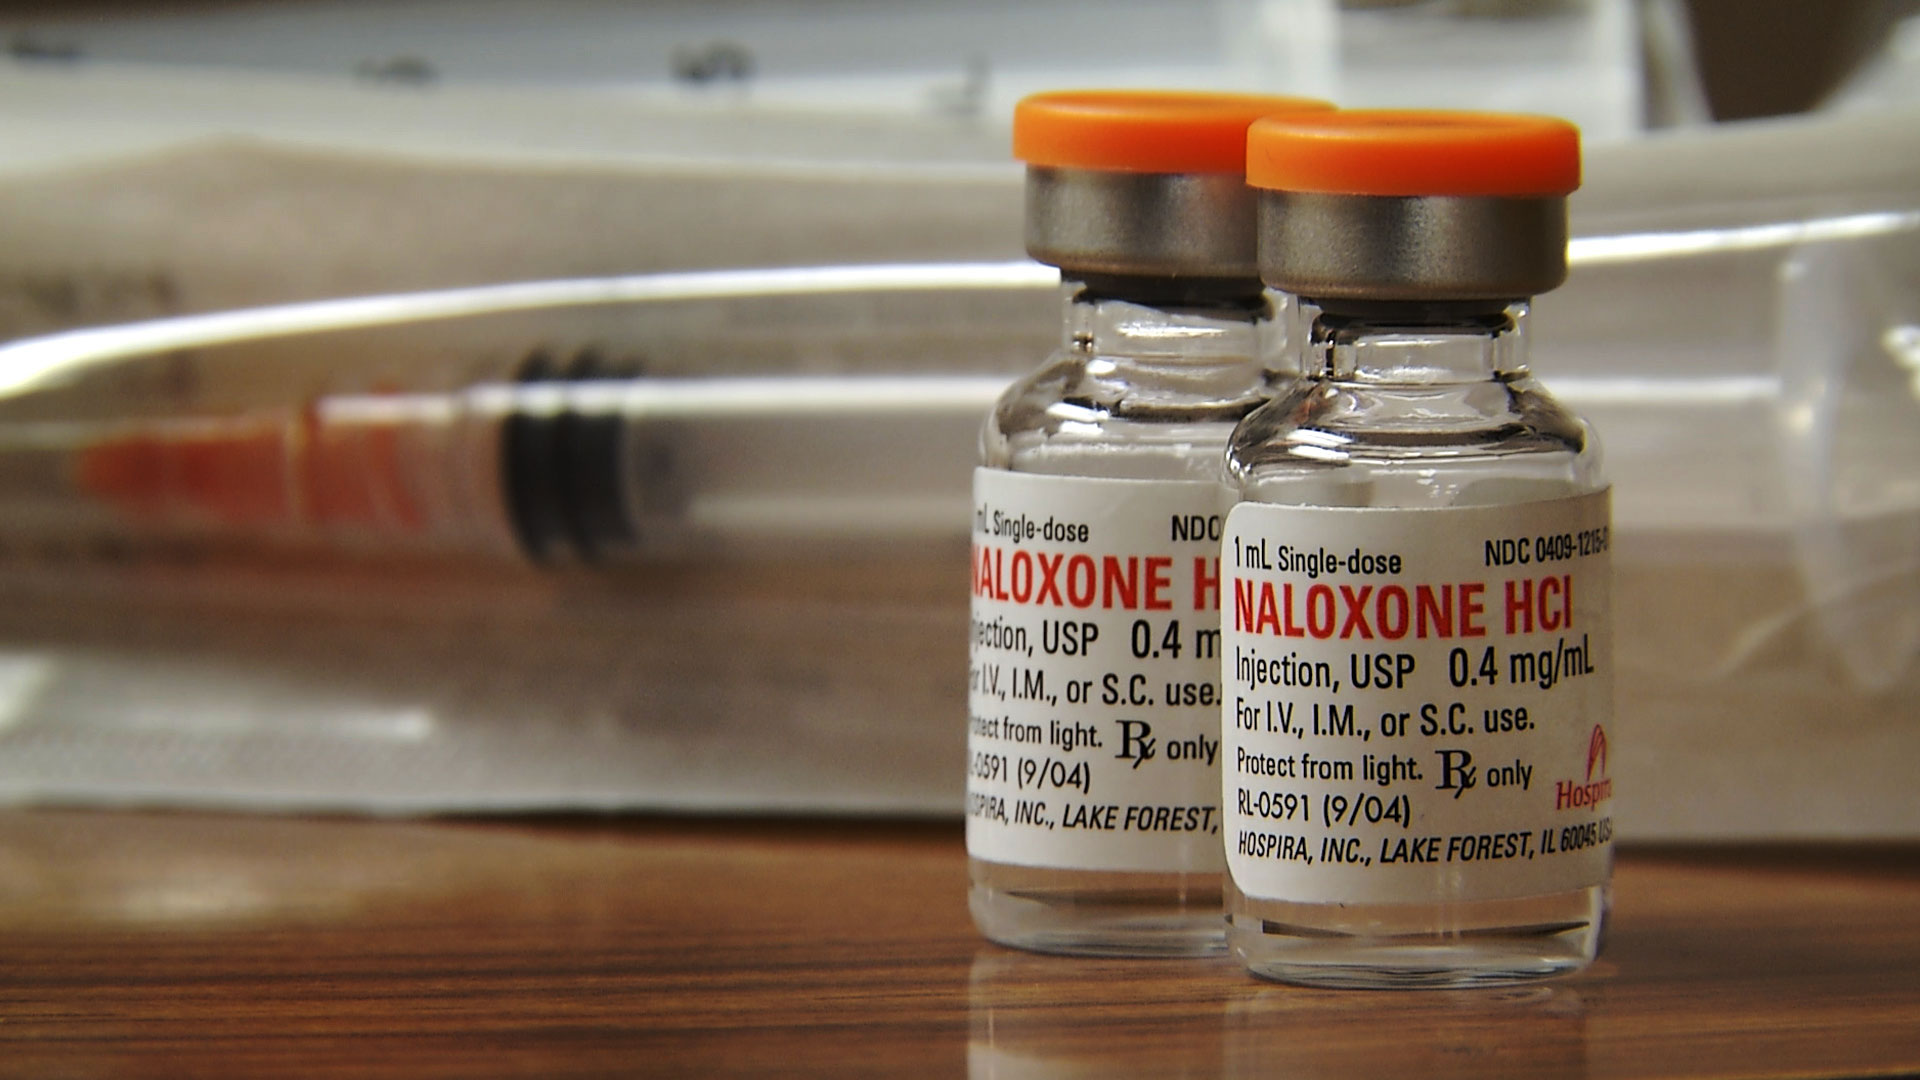 Vials of naloxone, which can be used to counter the effects of an opioid overdose.